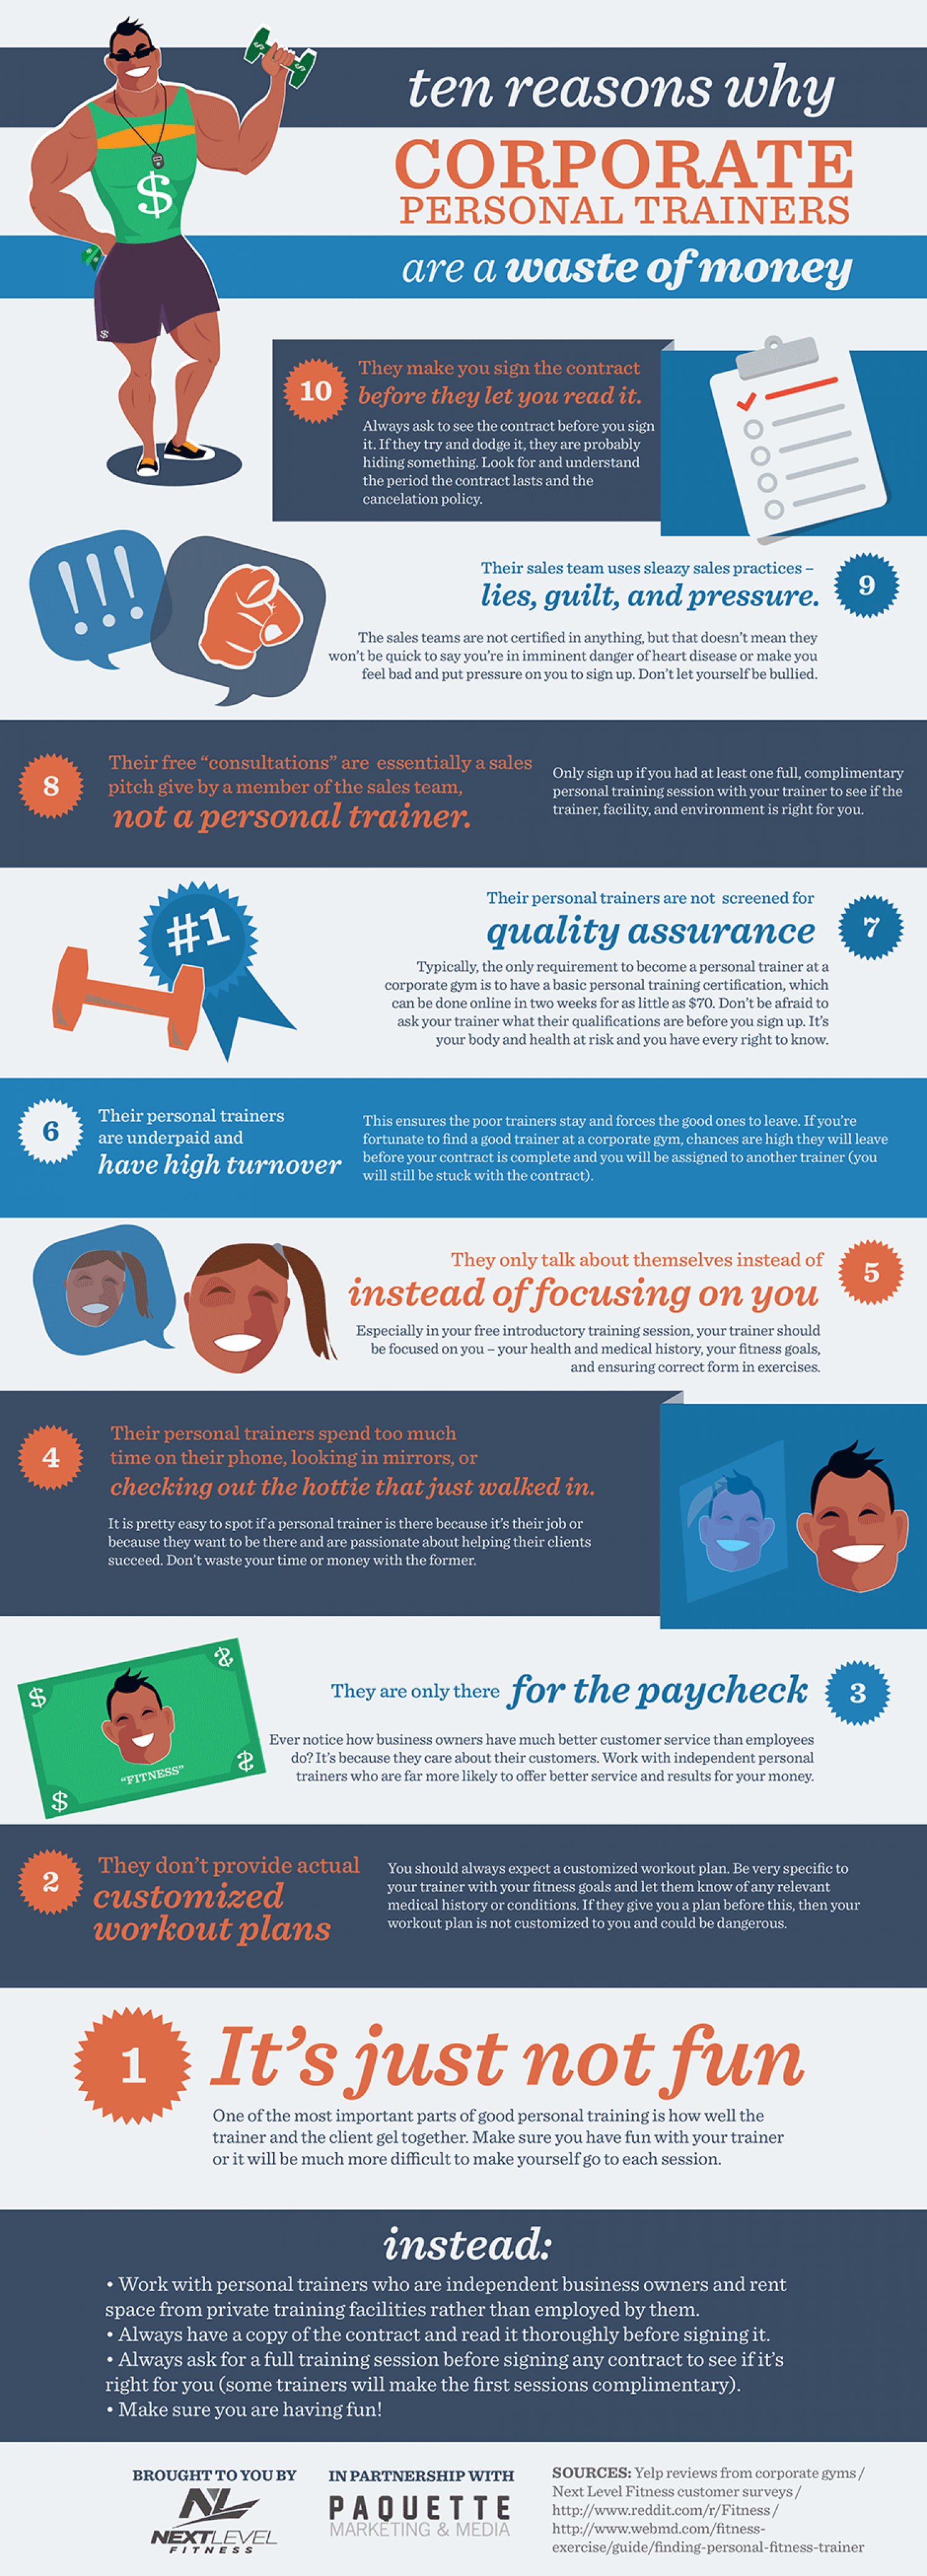 10 Reasons Why Corporate Personal Trainers are a Waste of Money Infographic